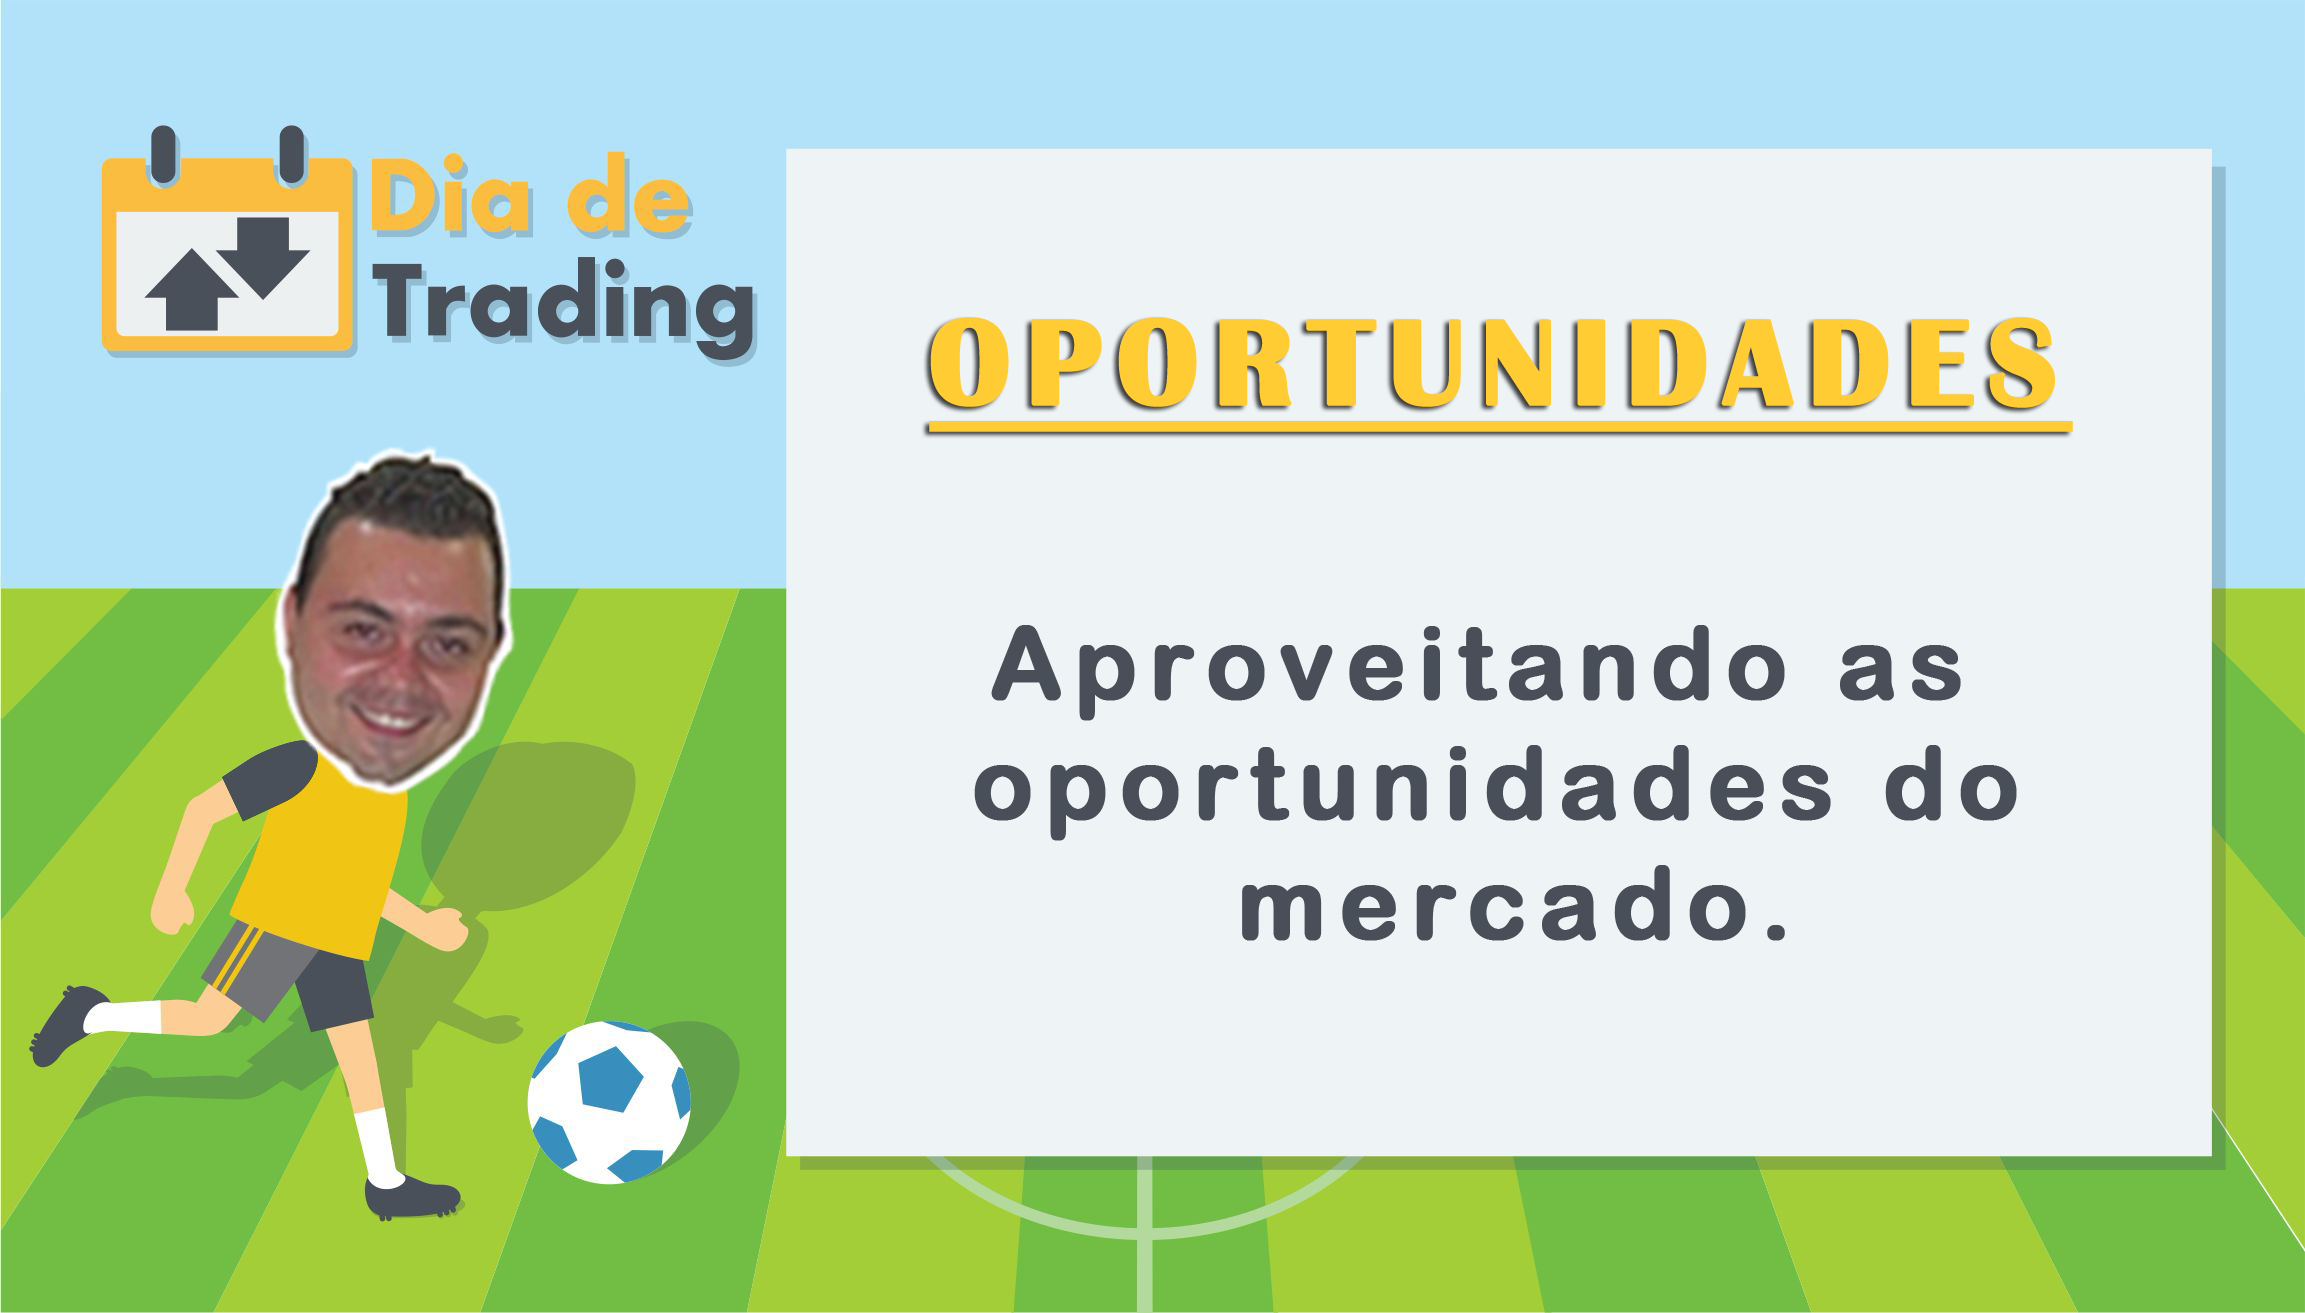 Aproveitando as oportunidades do mercado